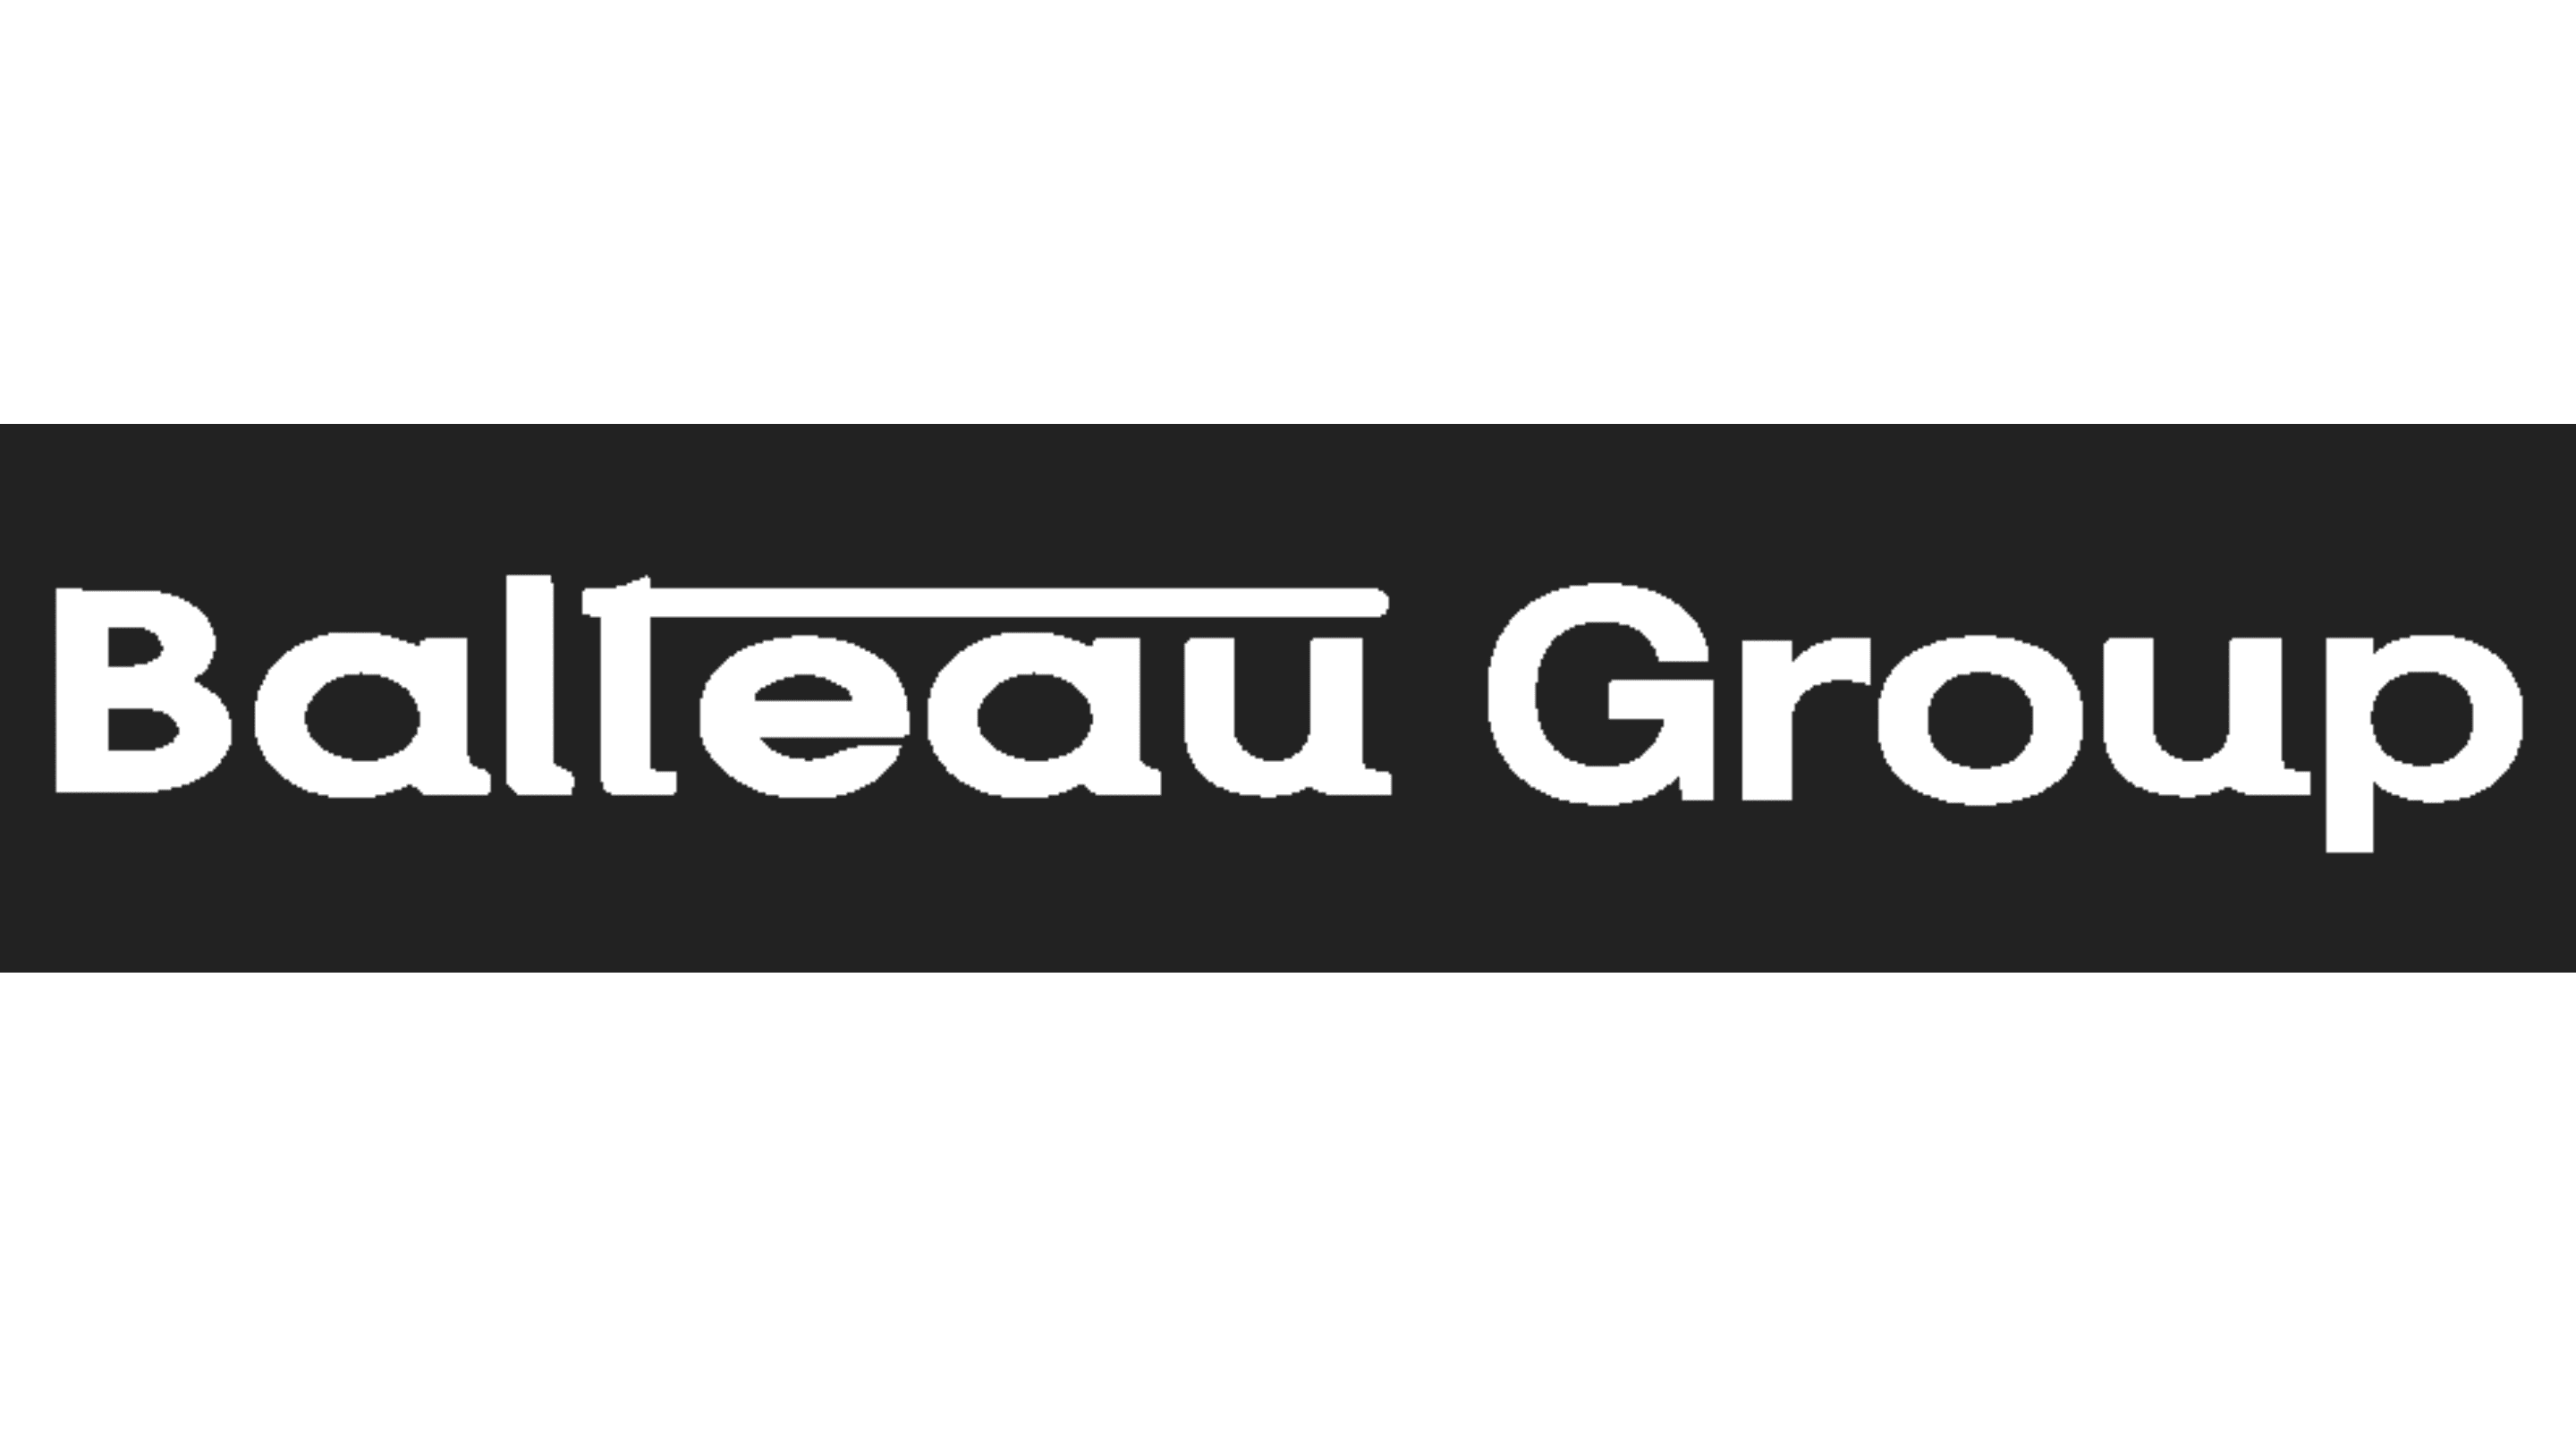 Balteau-group-logo